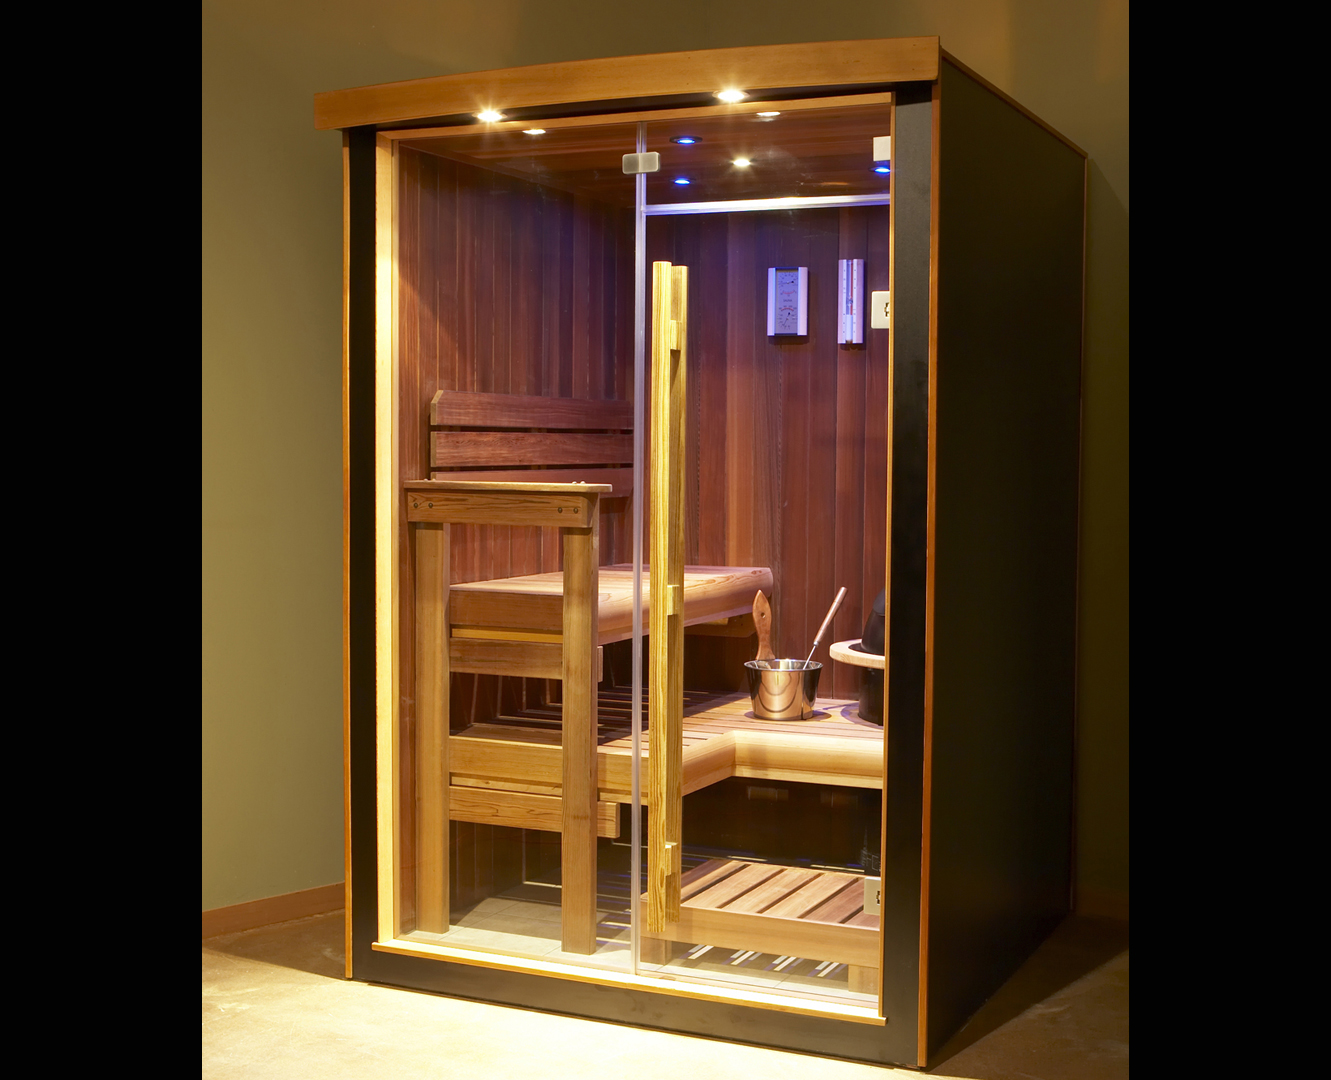 A Review of Helo Saunas - One of the Oldest and Largest In ...